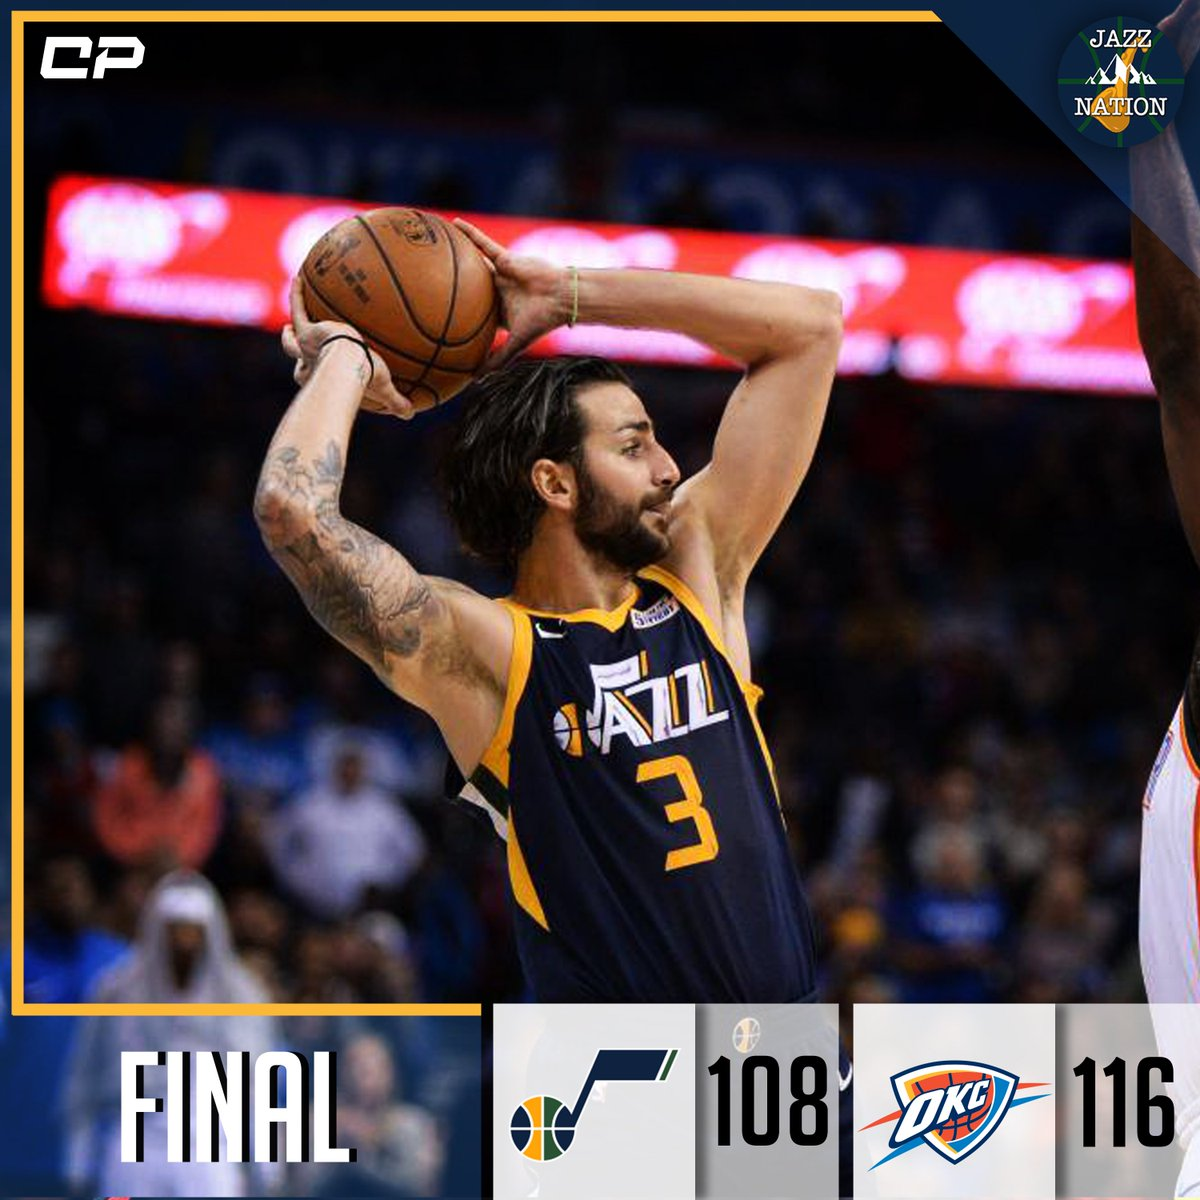 [FINAL] Jazz fall to Thunder, 116-108.  D. Mitchell: 27 PTS, 10 REB, 2 AST  HIGHLIGHTS: bit.ly/ClutchPoints